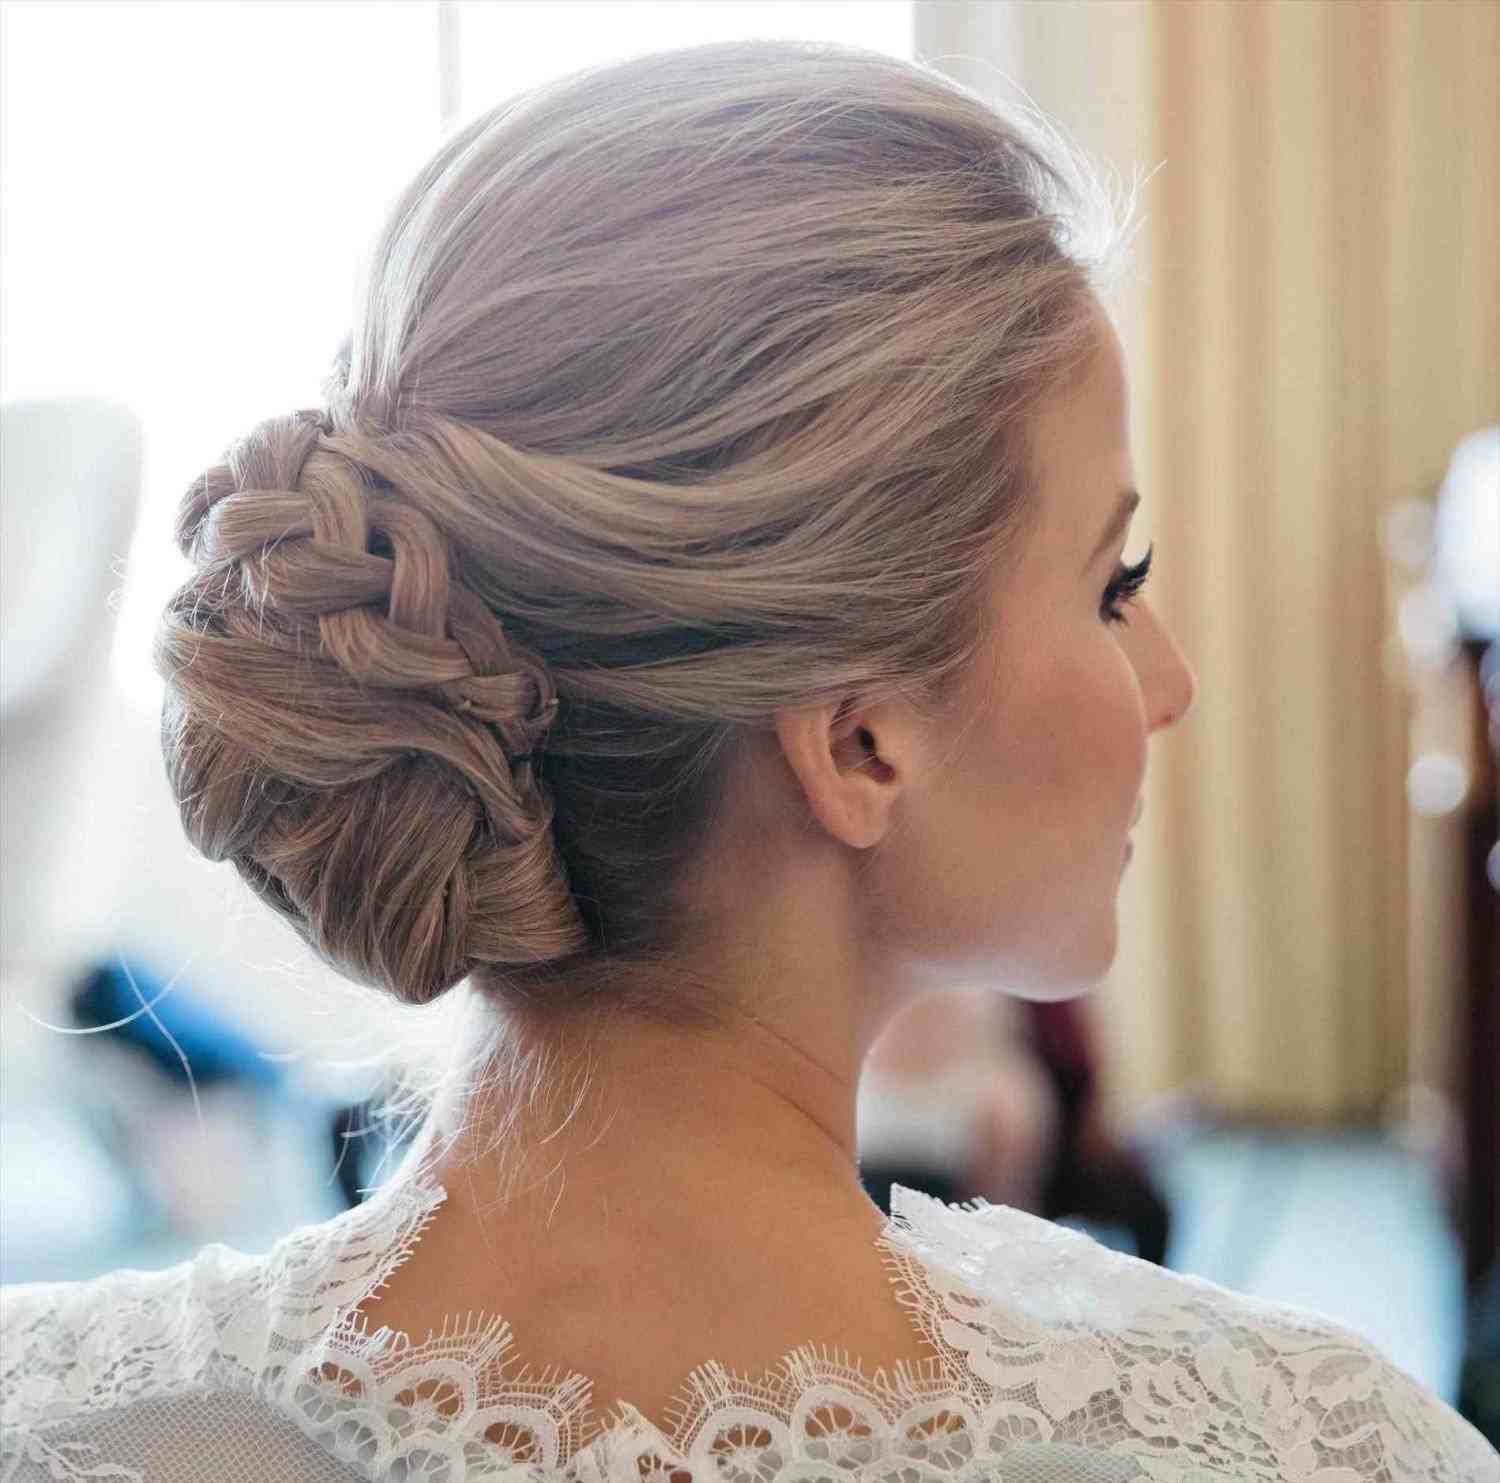 Indian Bridal Hairstyles Low Bun Braided Hairstyles For Wedding